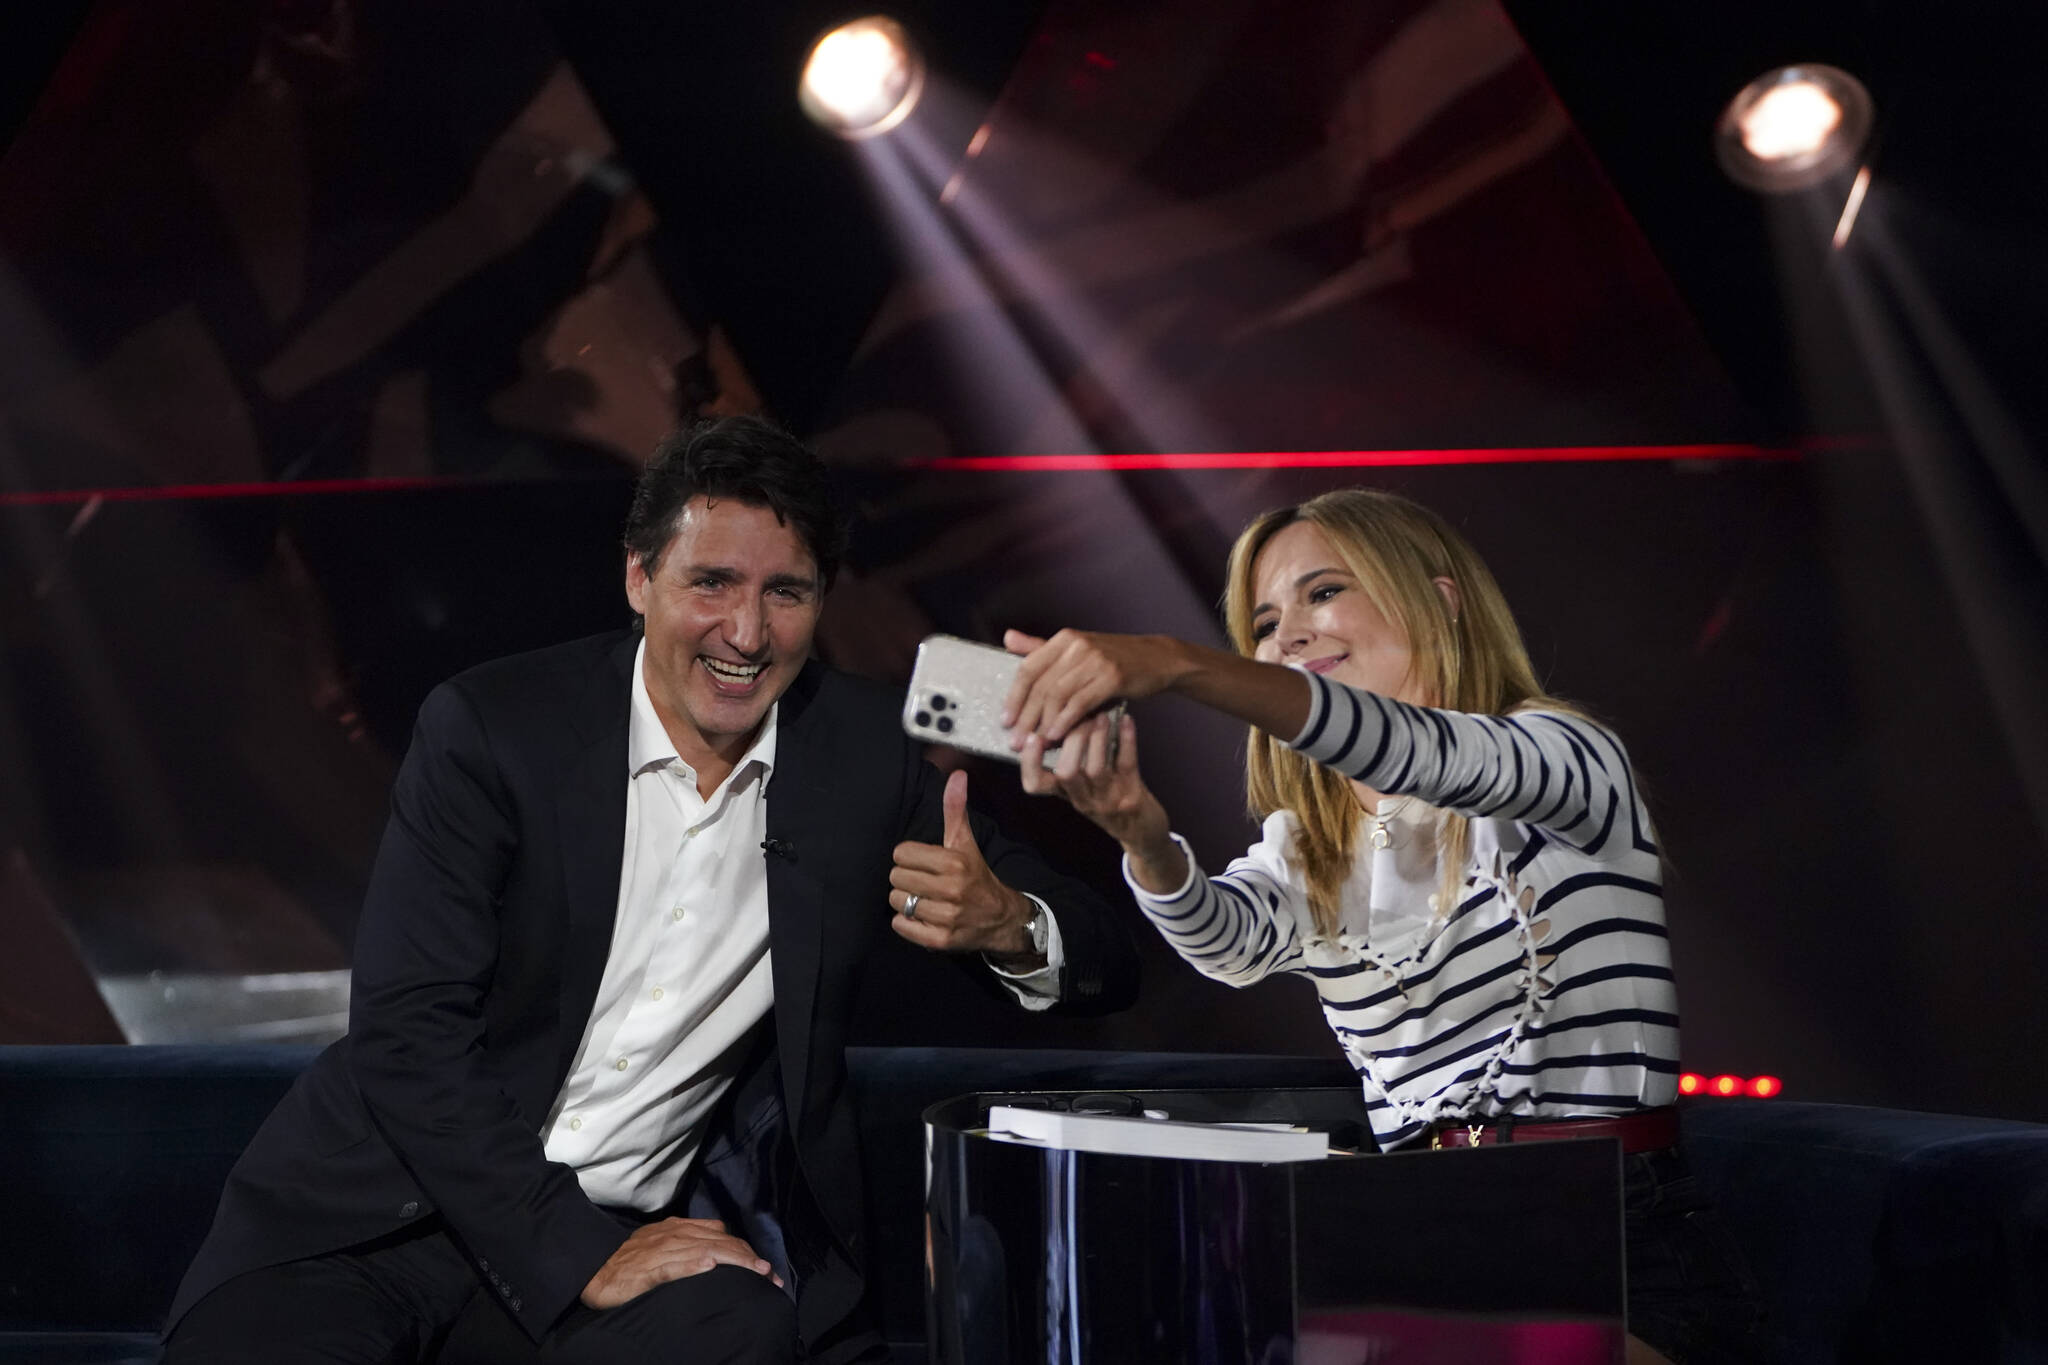 Liberal Leader Justin Trudeau talks with host Julie Snyder as he takes part in the TV show 'La Semaine des 4 Julie' in Varennes, Que. on Wednesday, Sept. 15, 2021. THE CANADIAN PRESS/Sean Kilpatrick